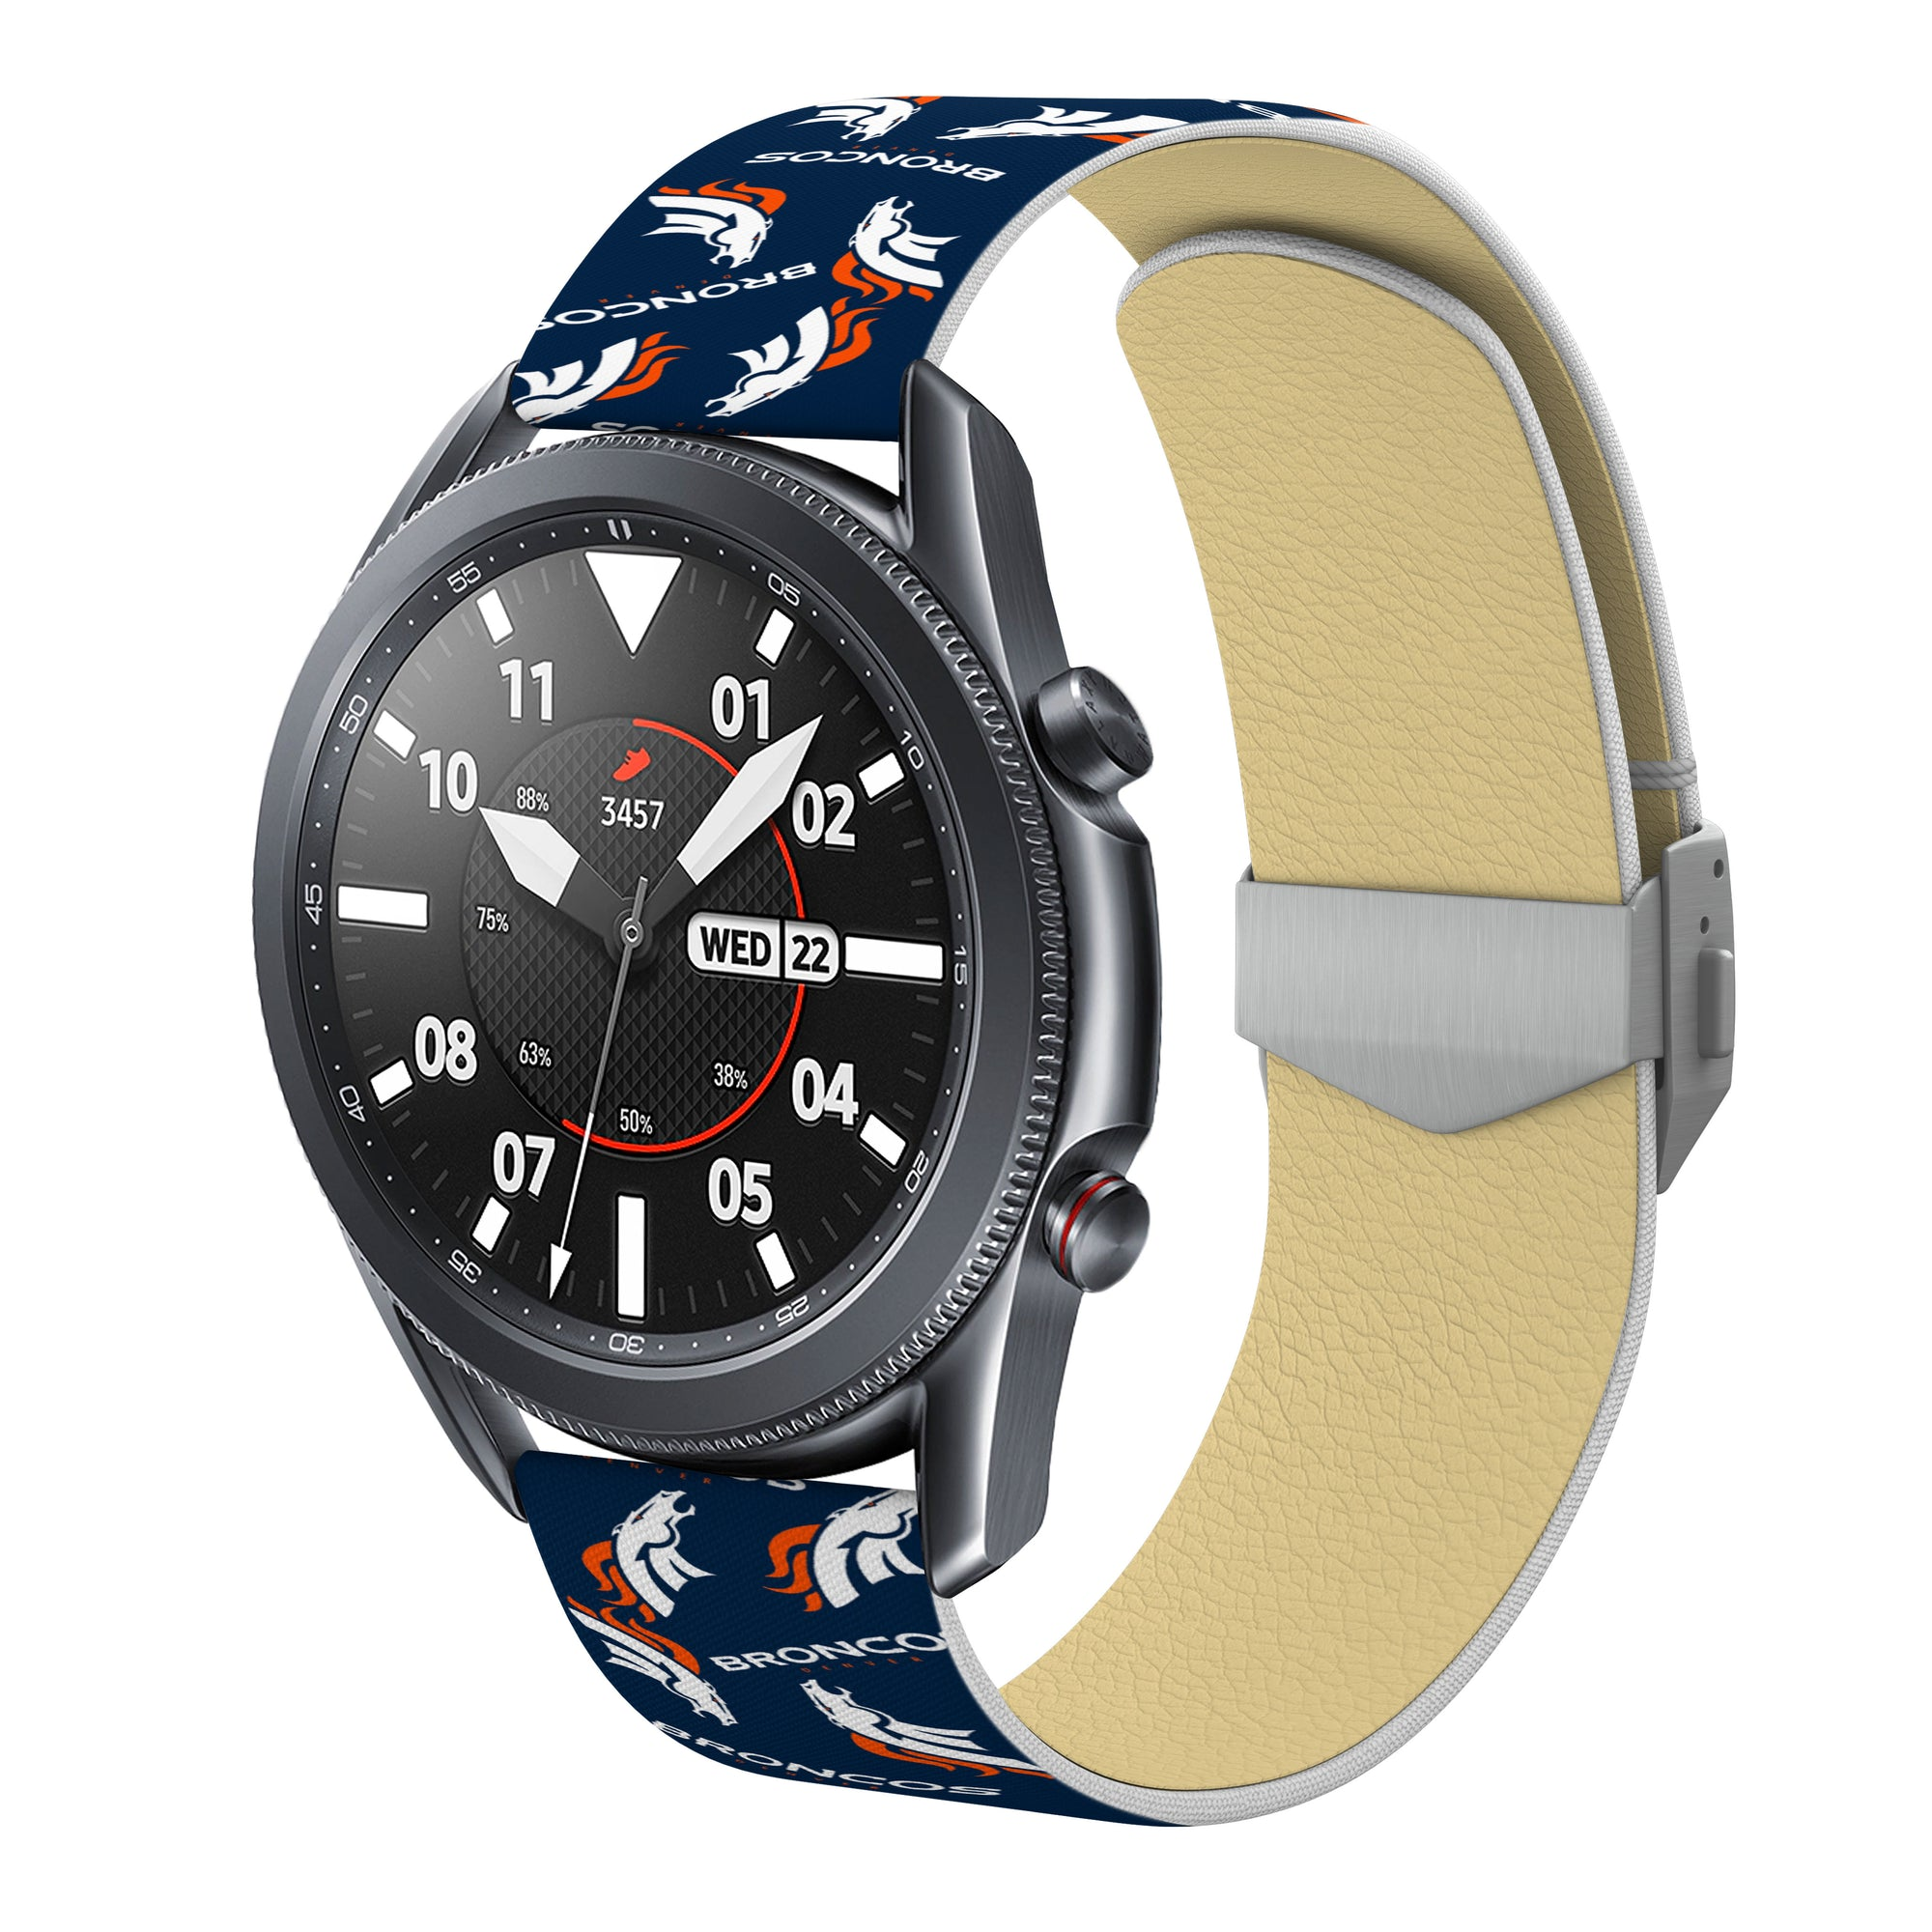 Denver Broncos  Full Print Quick Change Watch Band With Engraved Buckle - AffinityBands